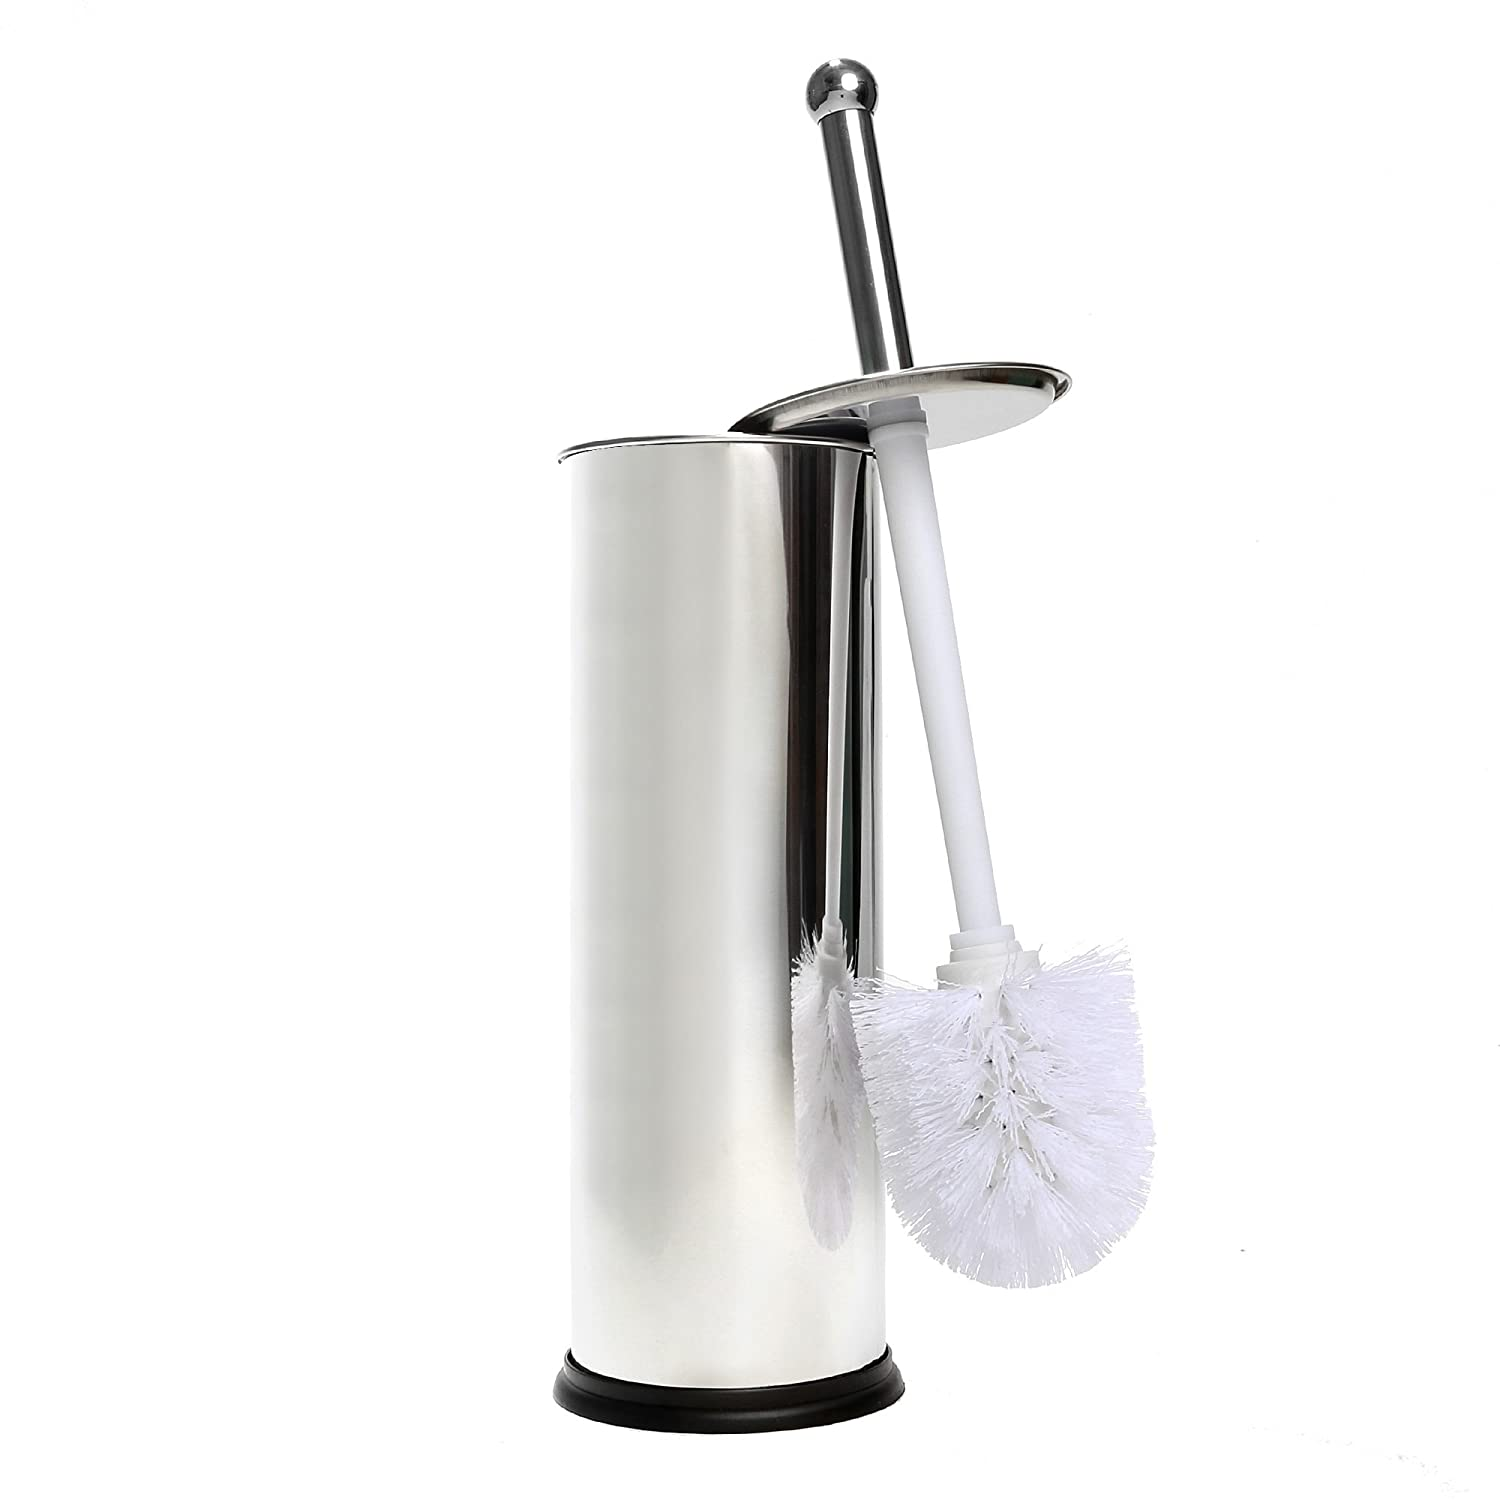 Home Intuition Toilet Brush With Holder and Drip Cup atlas intuition 541 4